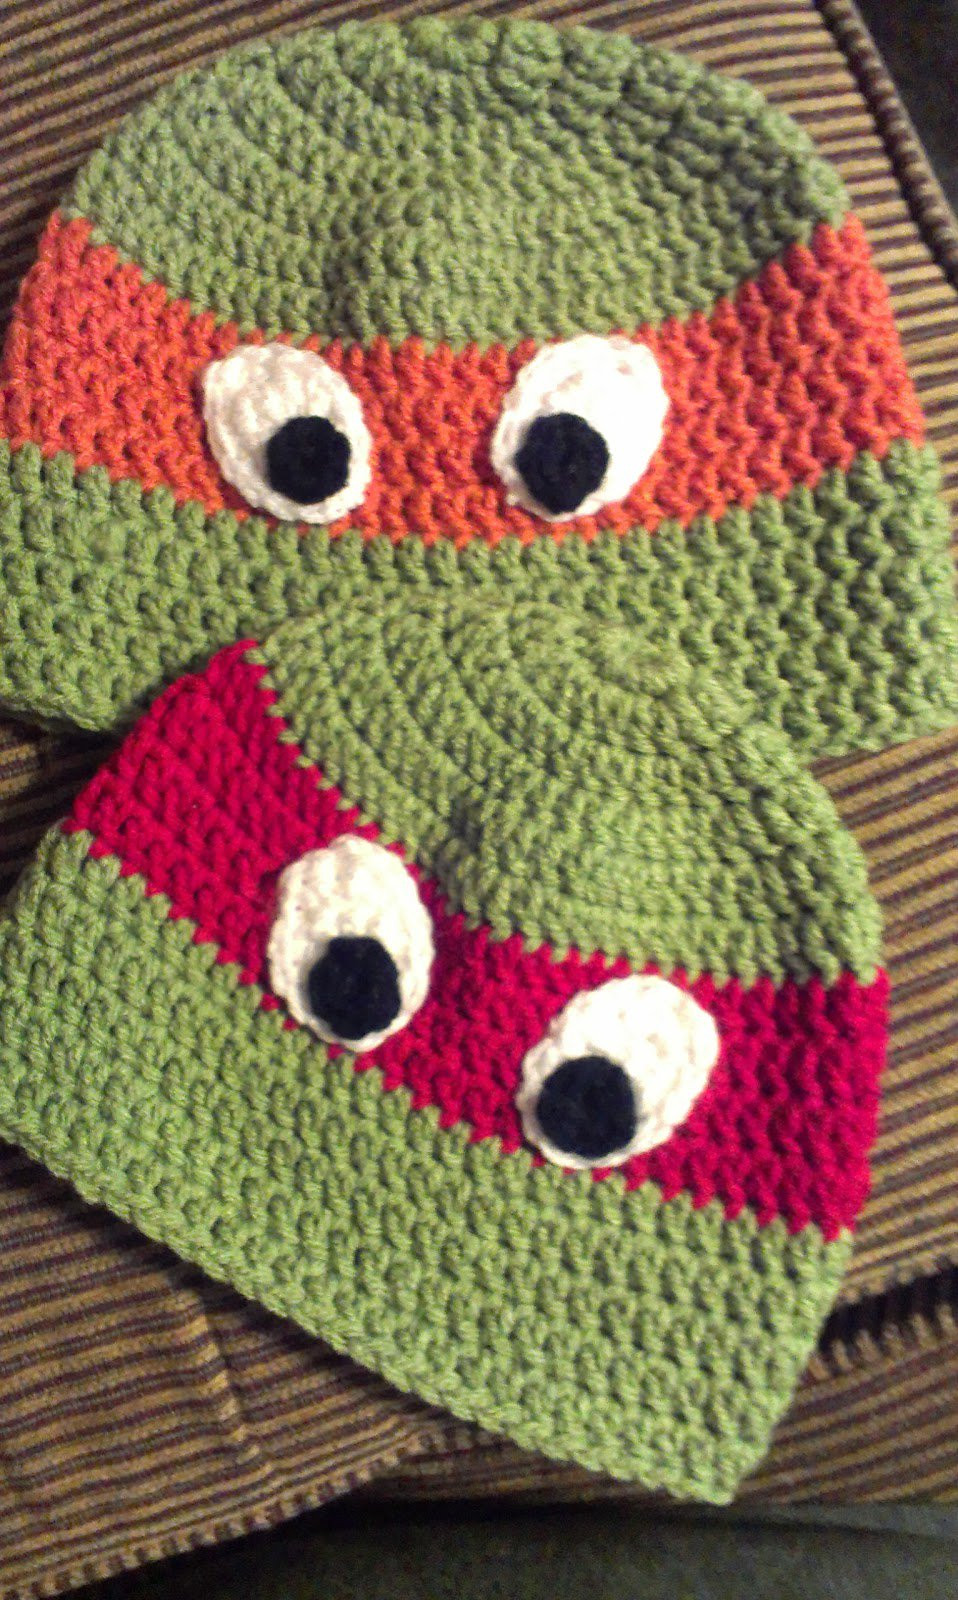 Crochet Ninja Turtle Hat Luxury Crochet Ninja Turtle Patterns Of Innovative 46 Pictures Crochet Ninja Turtle Hat